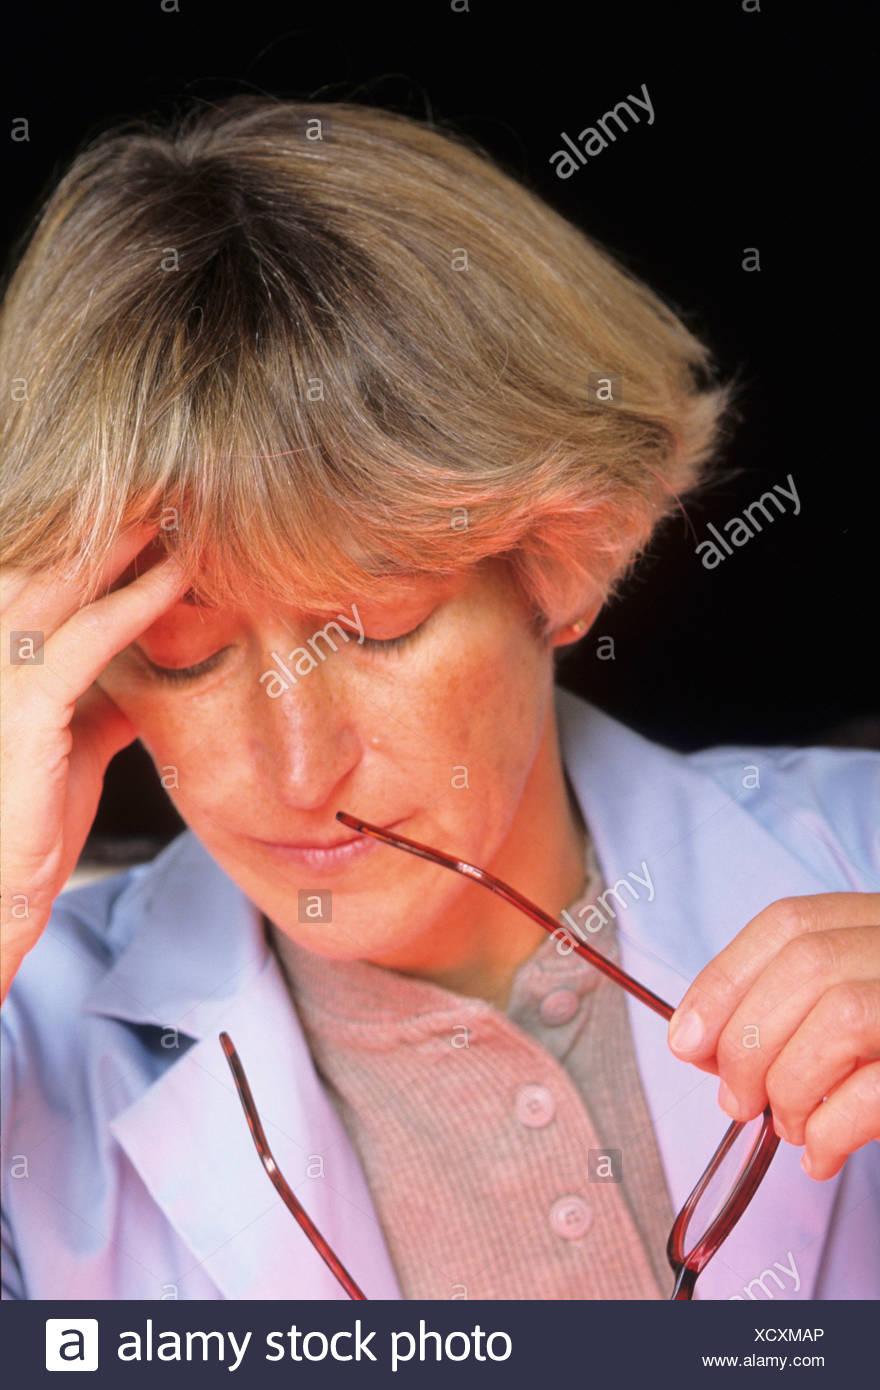 FEMALE PHYSICIAN WITH HEADACHE OR FATIGUED - Stock Image